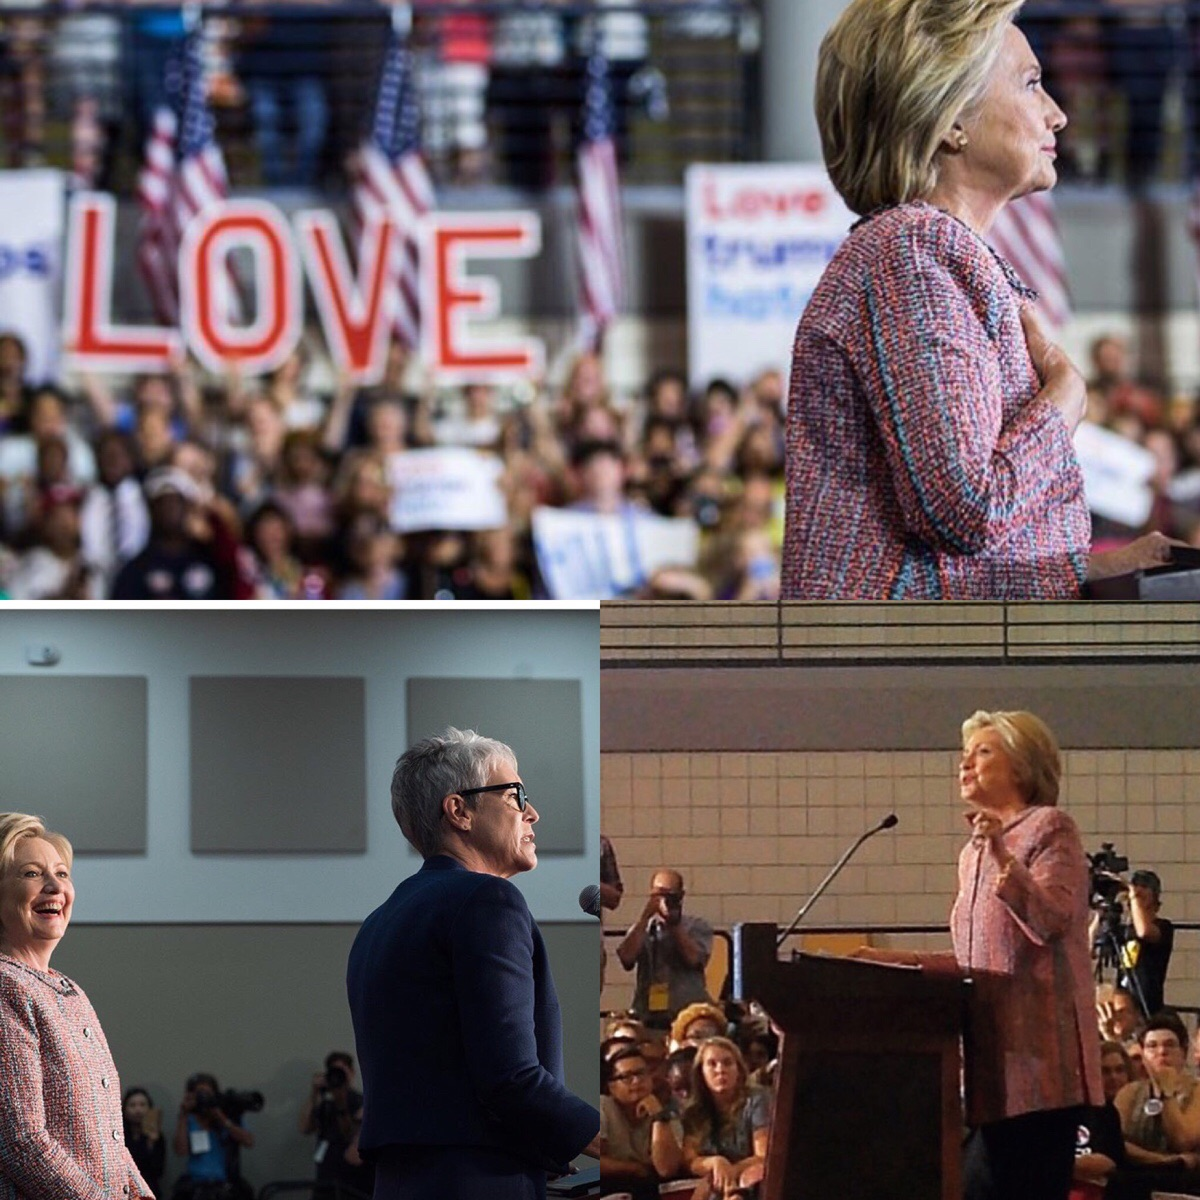 After searching countless HRC tags on Instagram, I only managed to find these 3 unique photos from her event in NC. Proof that they photoshopped the crowd in the photo on top.